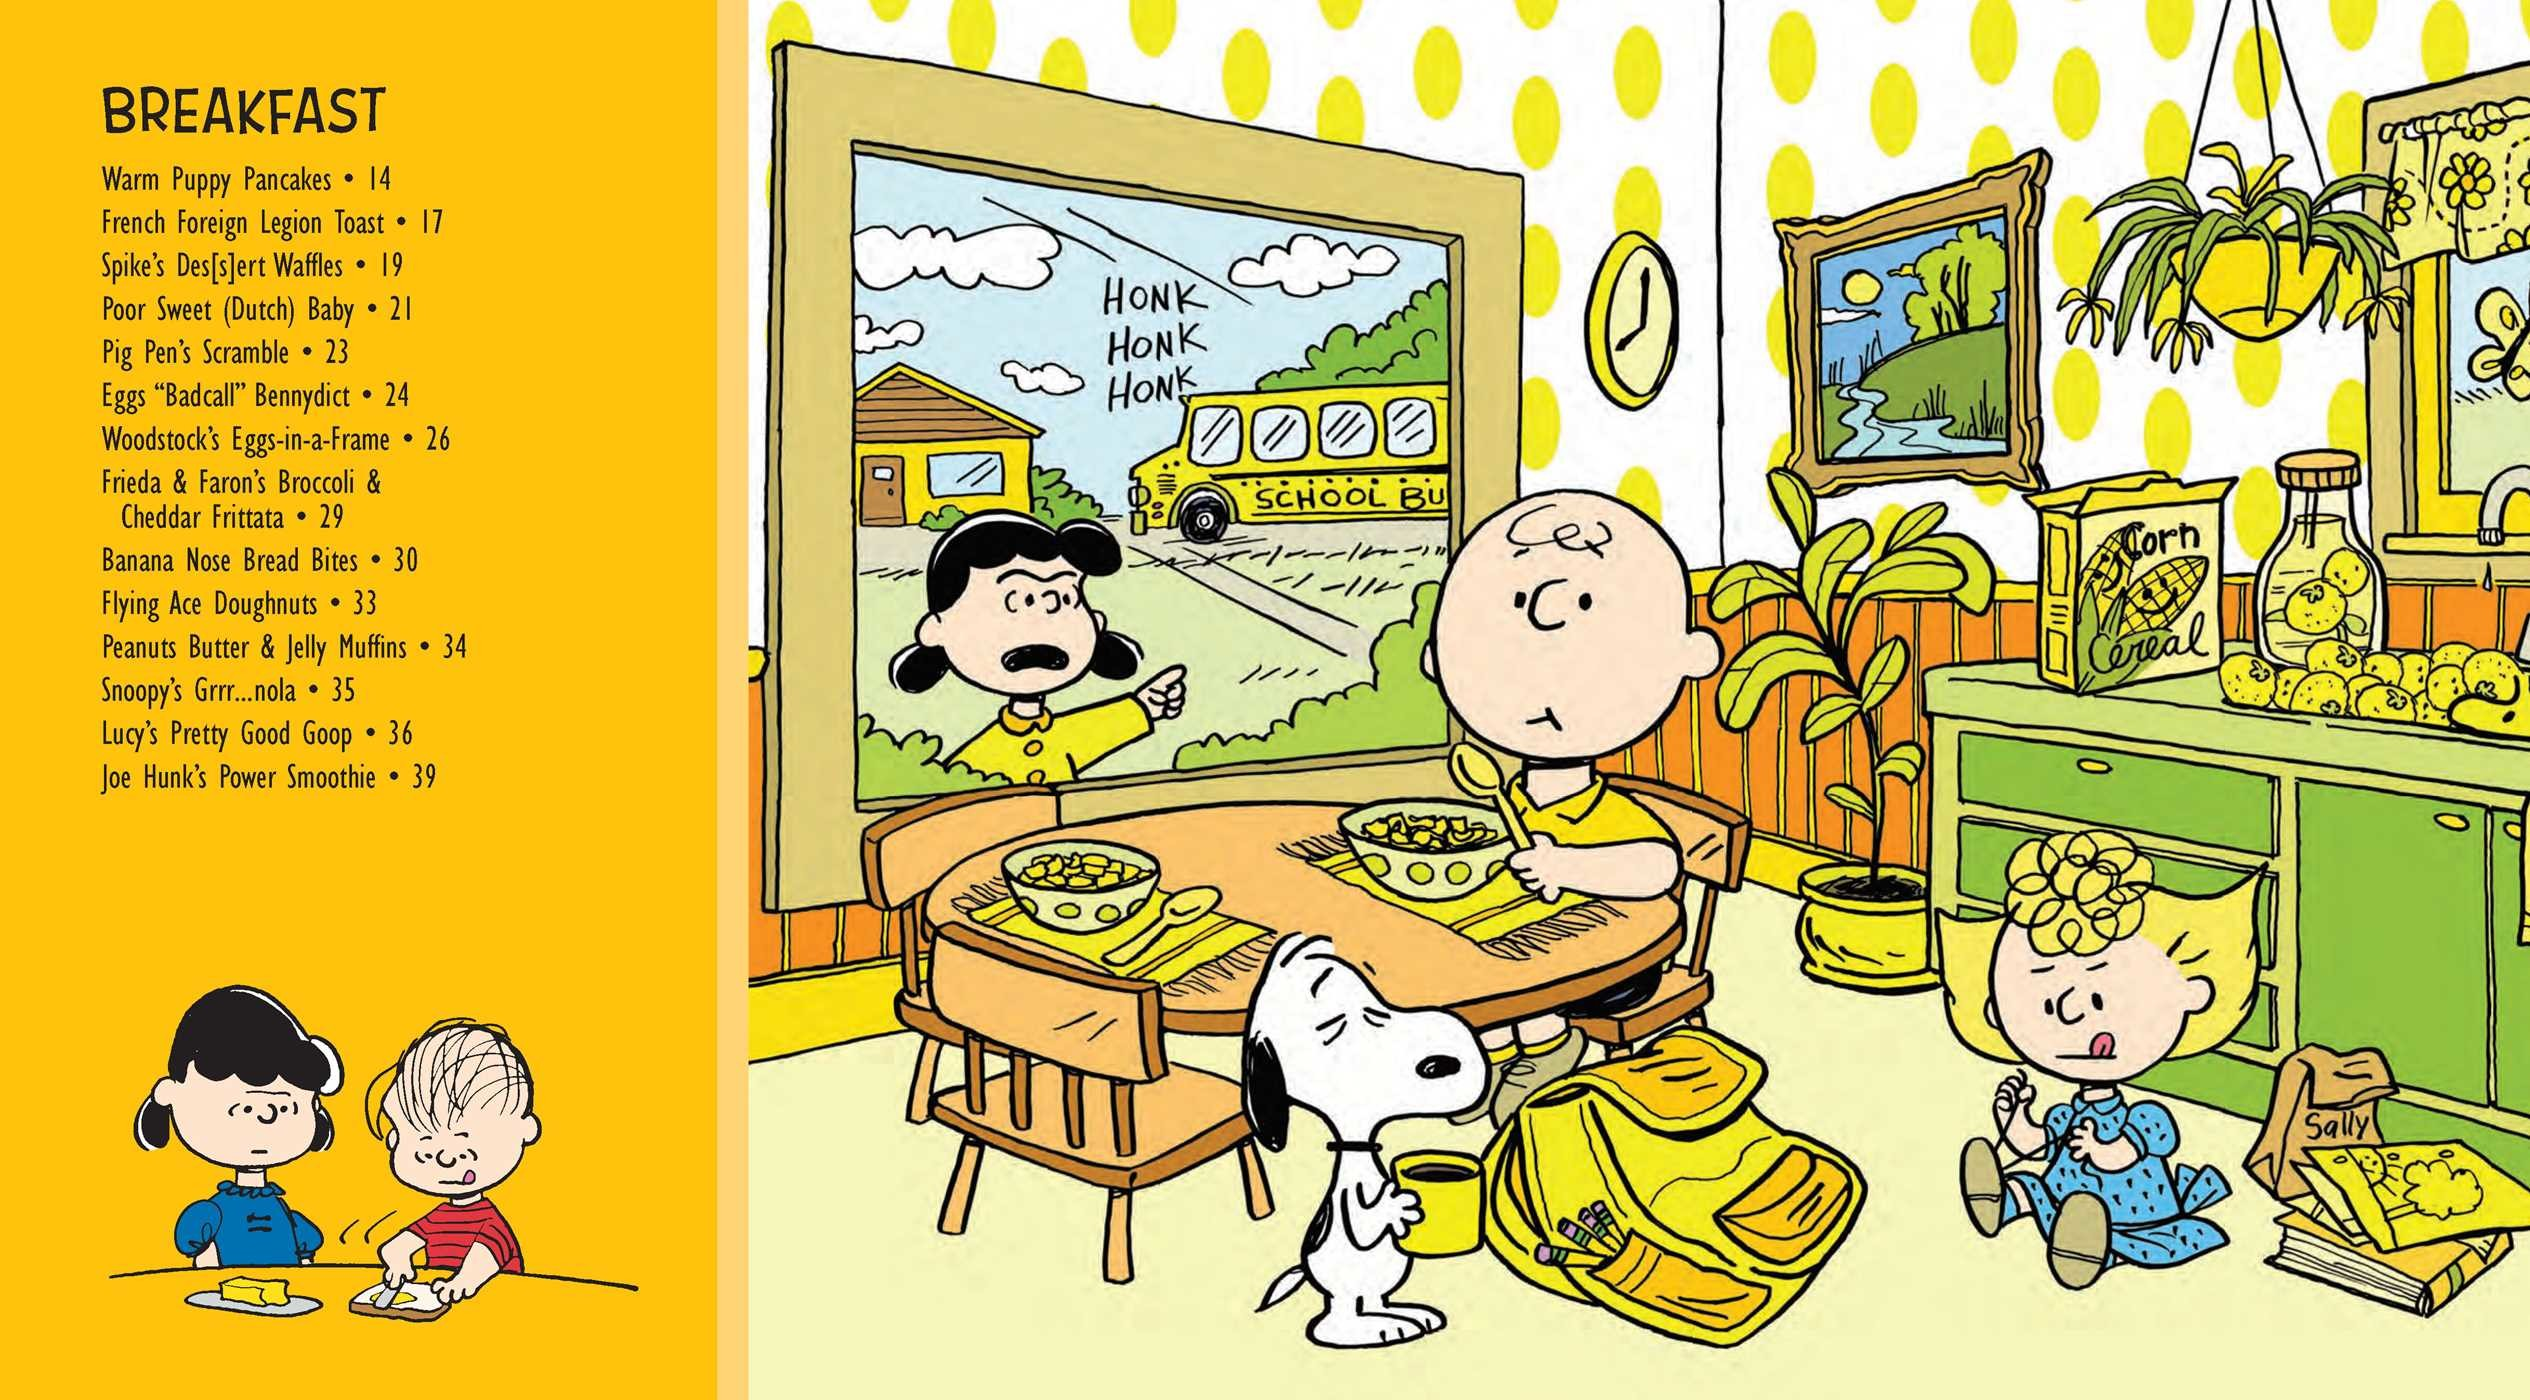 The peanuts munchtime cookbook 9781681884233.in01